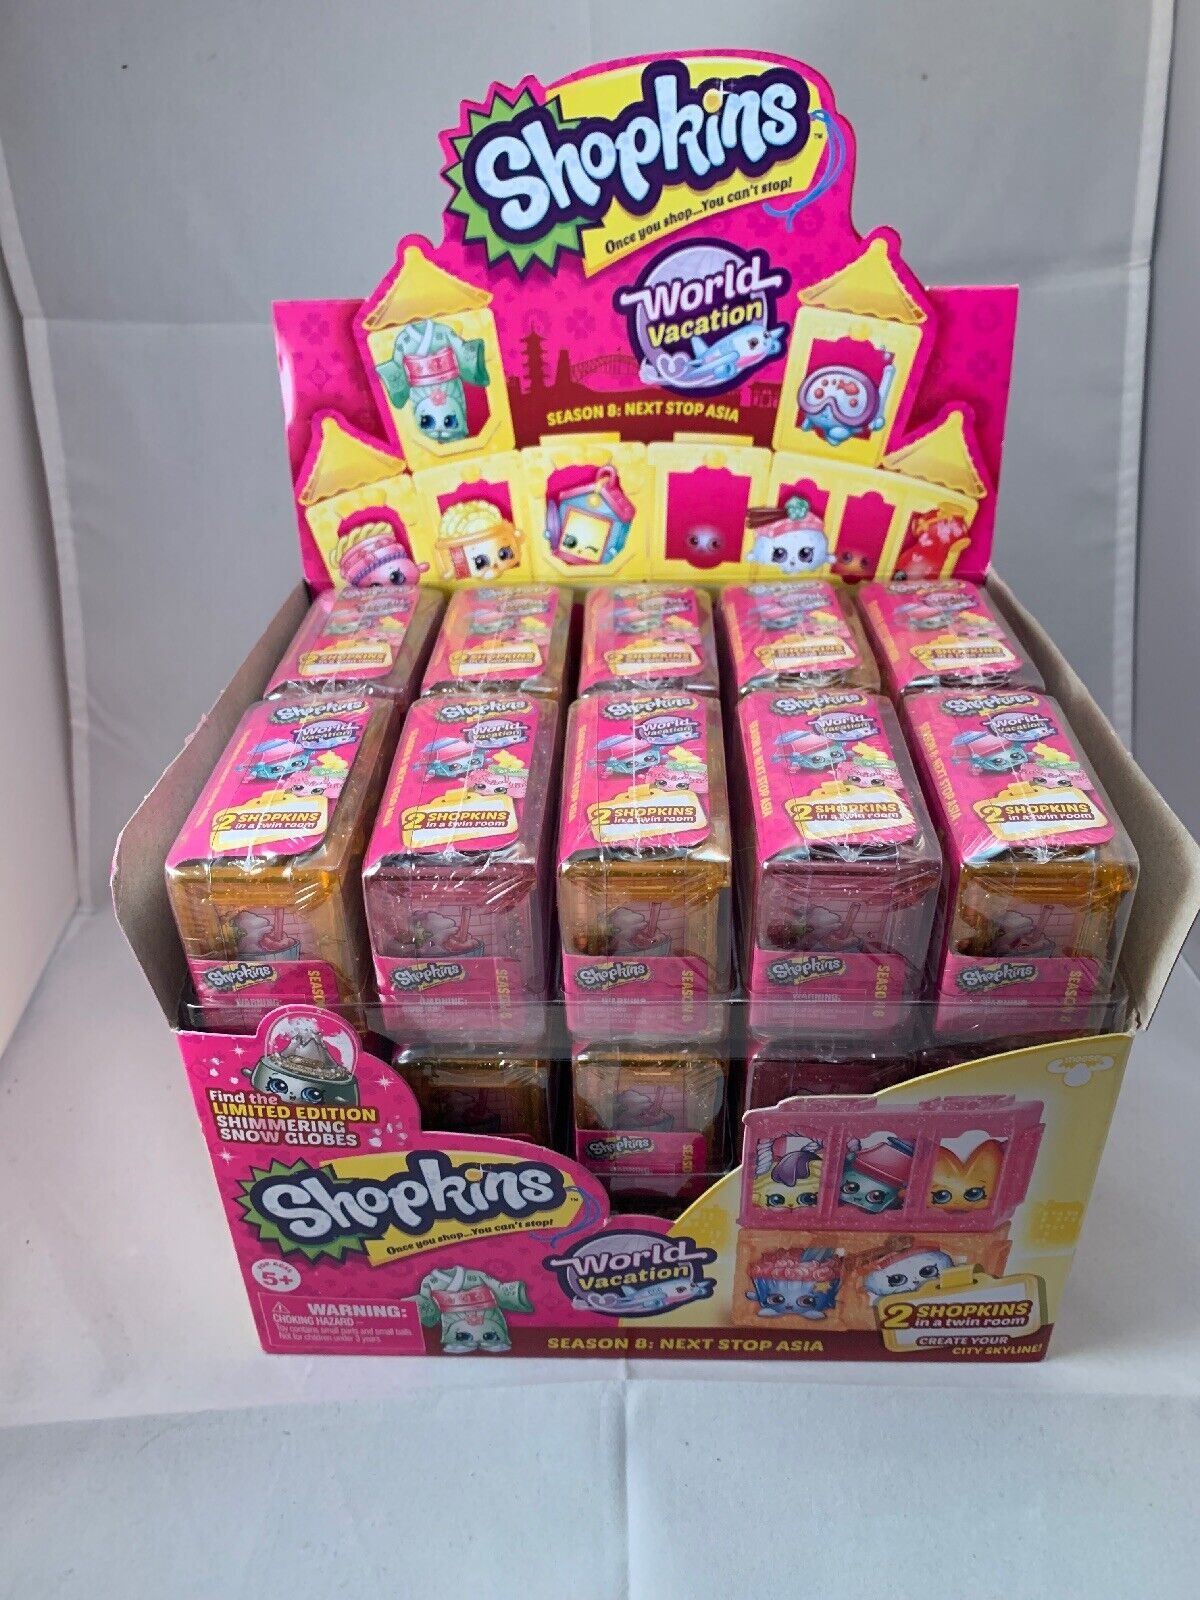 New Case Lot of 30 2 Pack Shopkins Season 8 World Vacation Next Stop Asia Blind